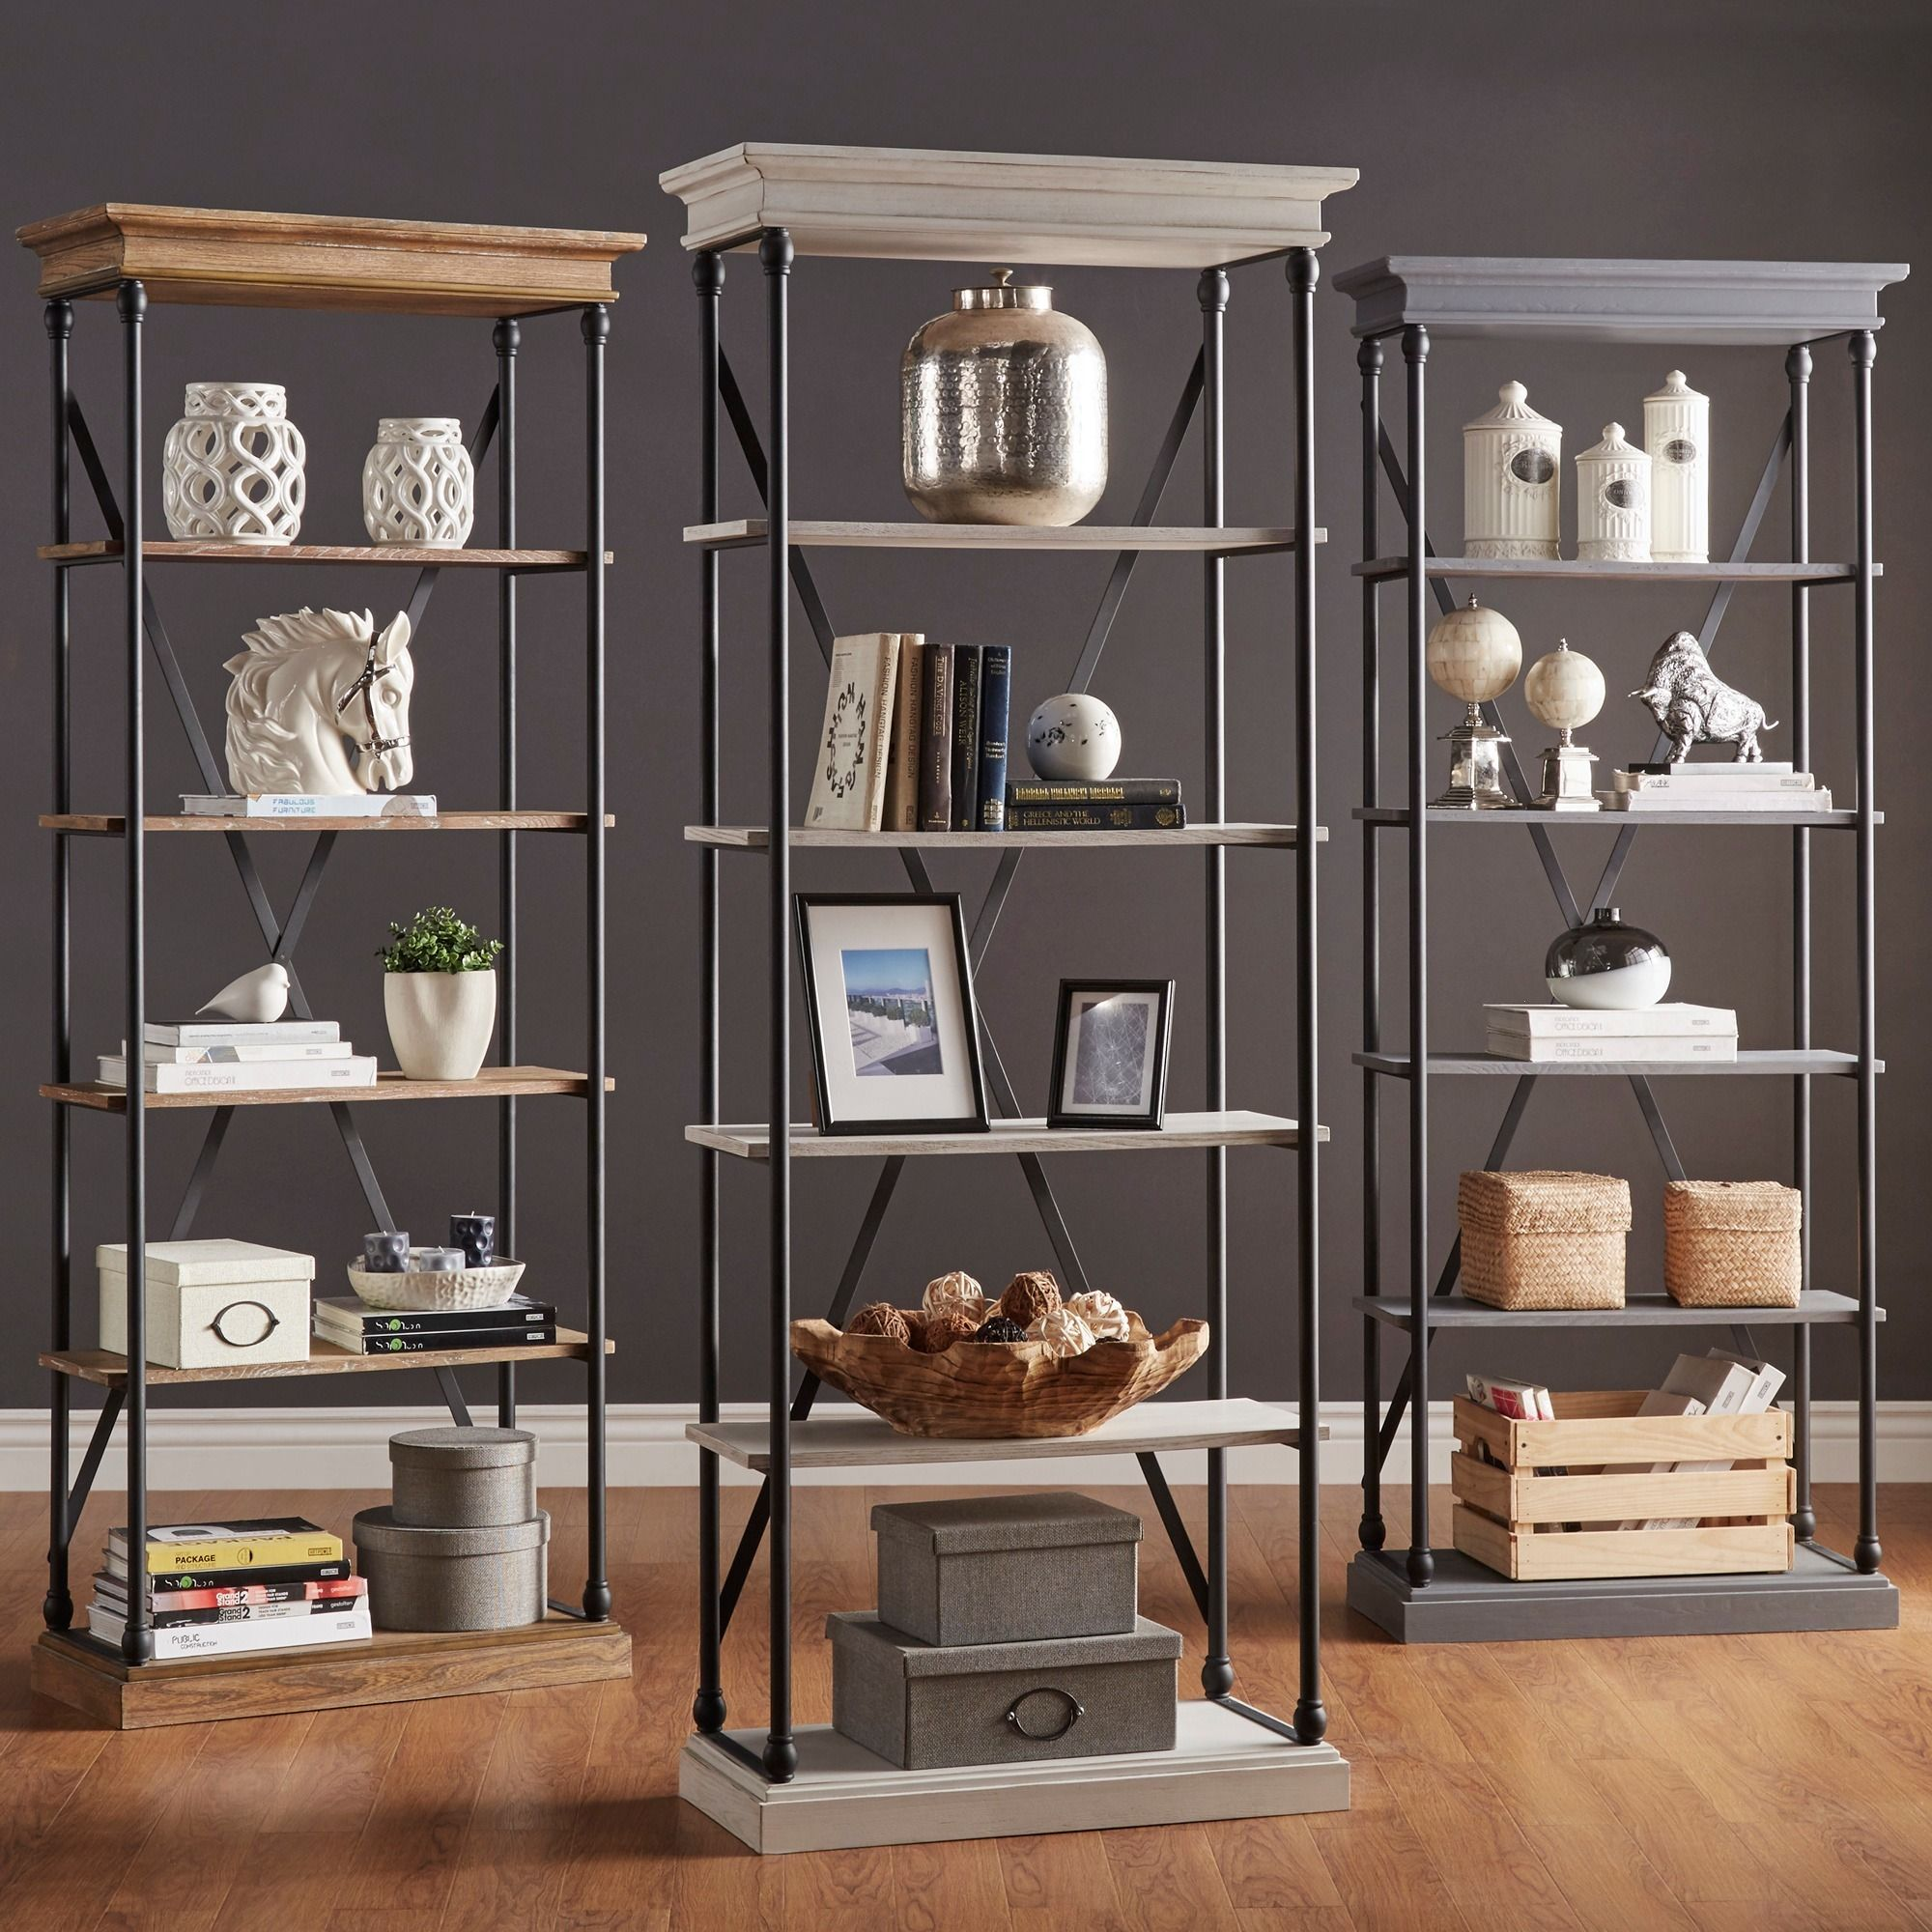 Add bold and rustic character to any room with this industrial style  bookcase. Inspired by